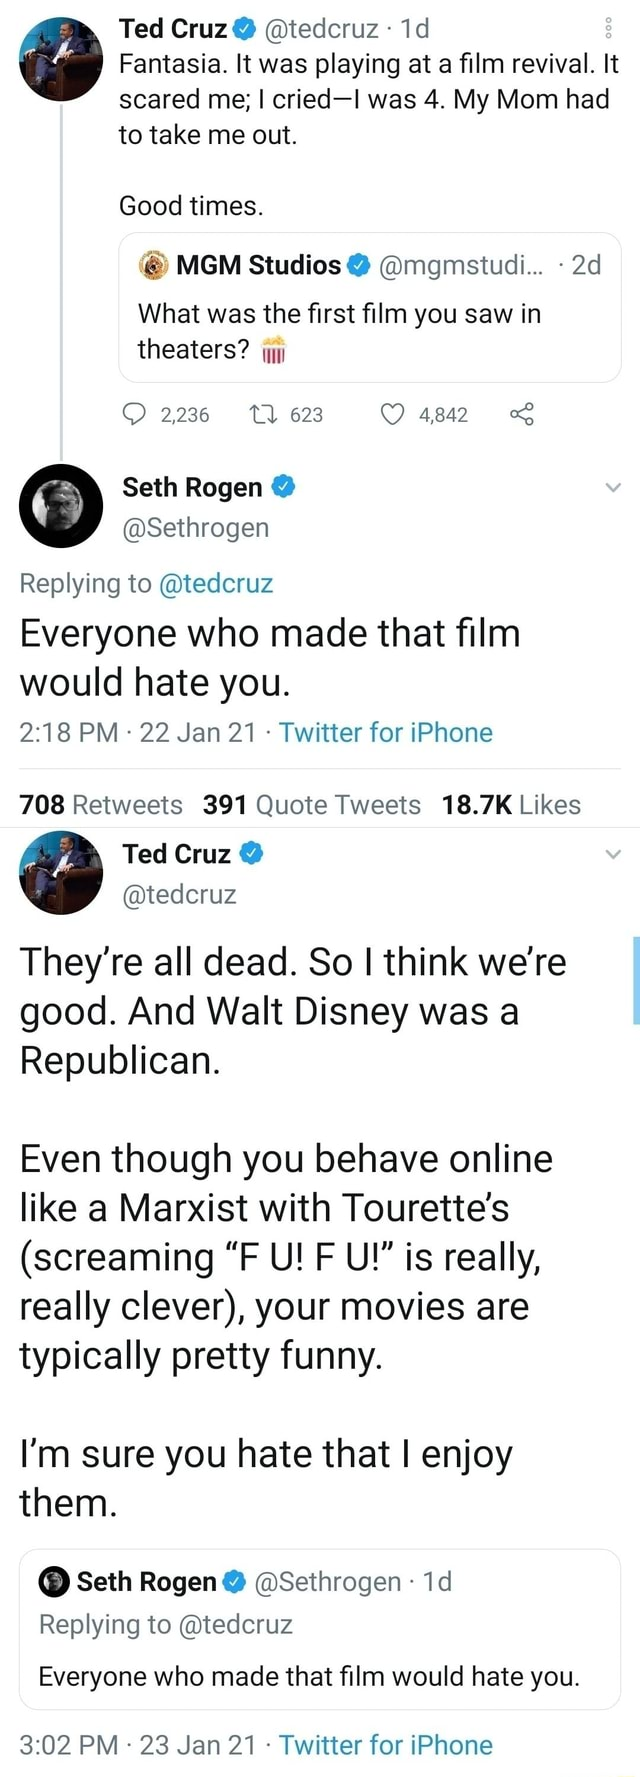 Ted Cruz tedcruz Fantasia. It was playing at a film revival. It scared me I cried I was 4. My Mom had to take me out. Good times. MGM Studios mgmsiudi What was the first film you saw in theaters 2236 623 4842 Seth Rogen Sethrogen Replying to tedcruz Everyone who made that film would hate you. PM 22 Jan 21 Twitter for iPhone They're all dead. So I think we're good. And Walt Disney was a Republican. Even though you behave online like a Marxist with Tourette's screaming F U F U is really, really clever , your movies are typically pretty funny. I'm sure you hate that I enjoy them. Seth Rogen Sethrogen Replying to tedcruz Everyone who made that film would hate you. PM 23 Jan 21 Twitter for iPhone meme